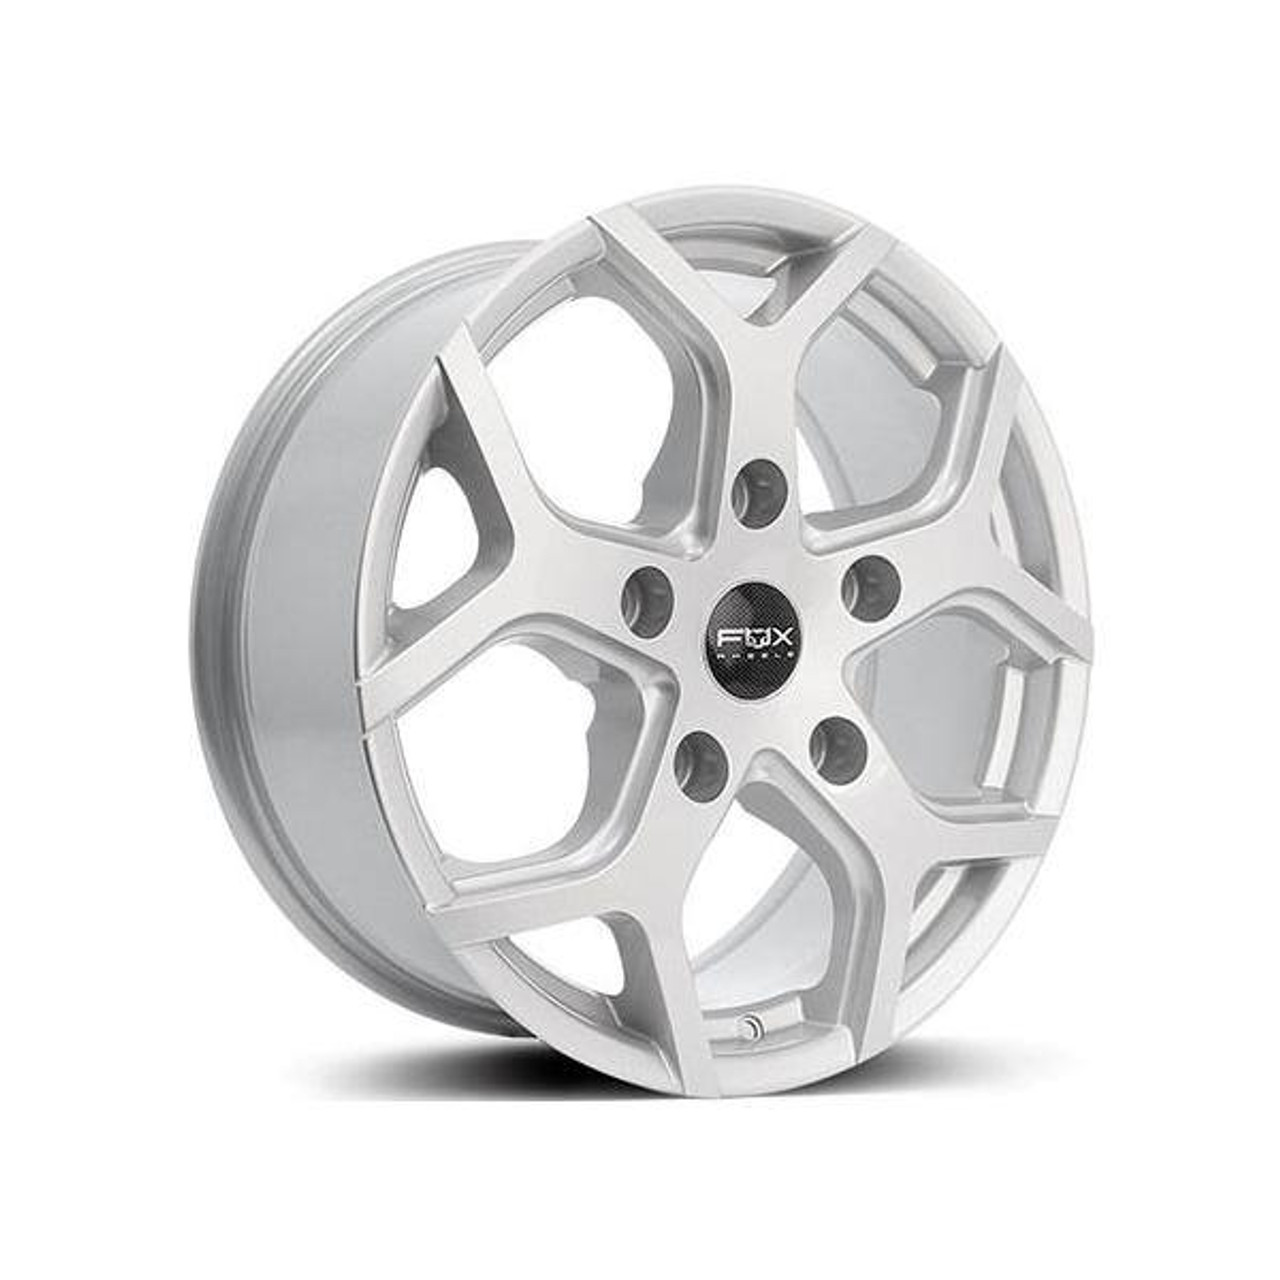 FOX Viper 4 Alloy Wheels Silver